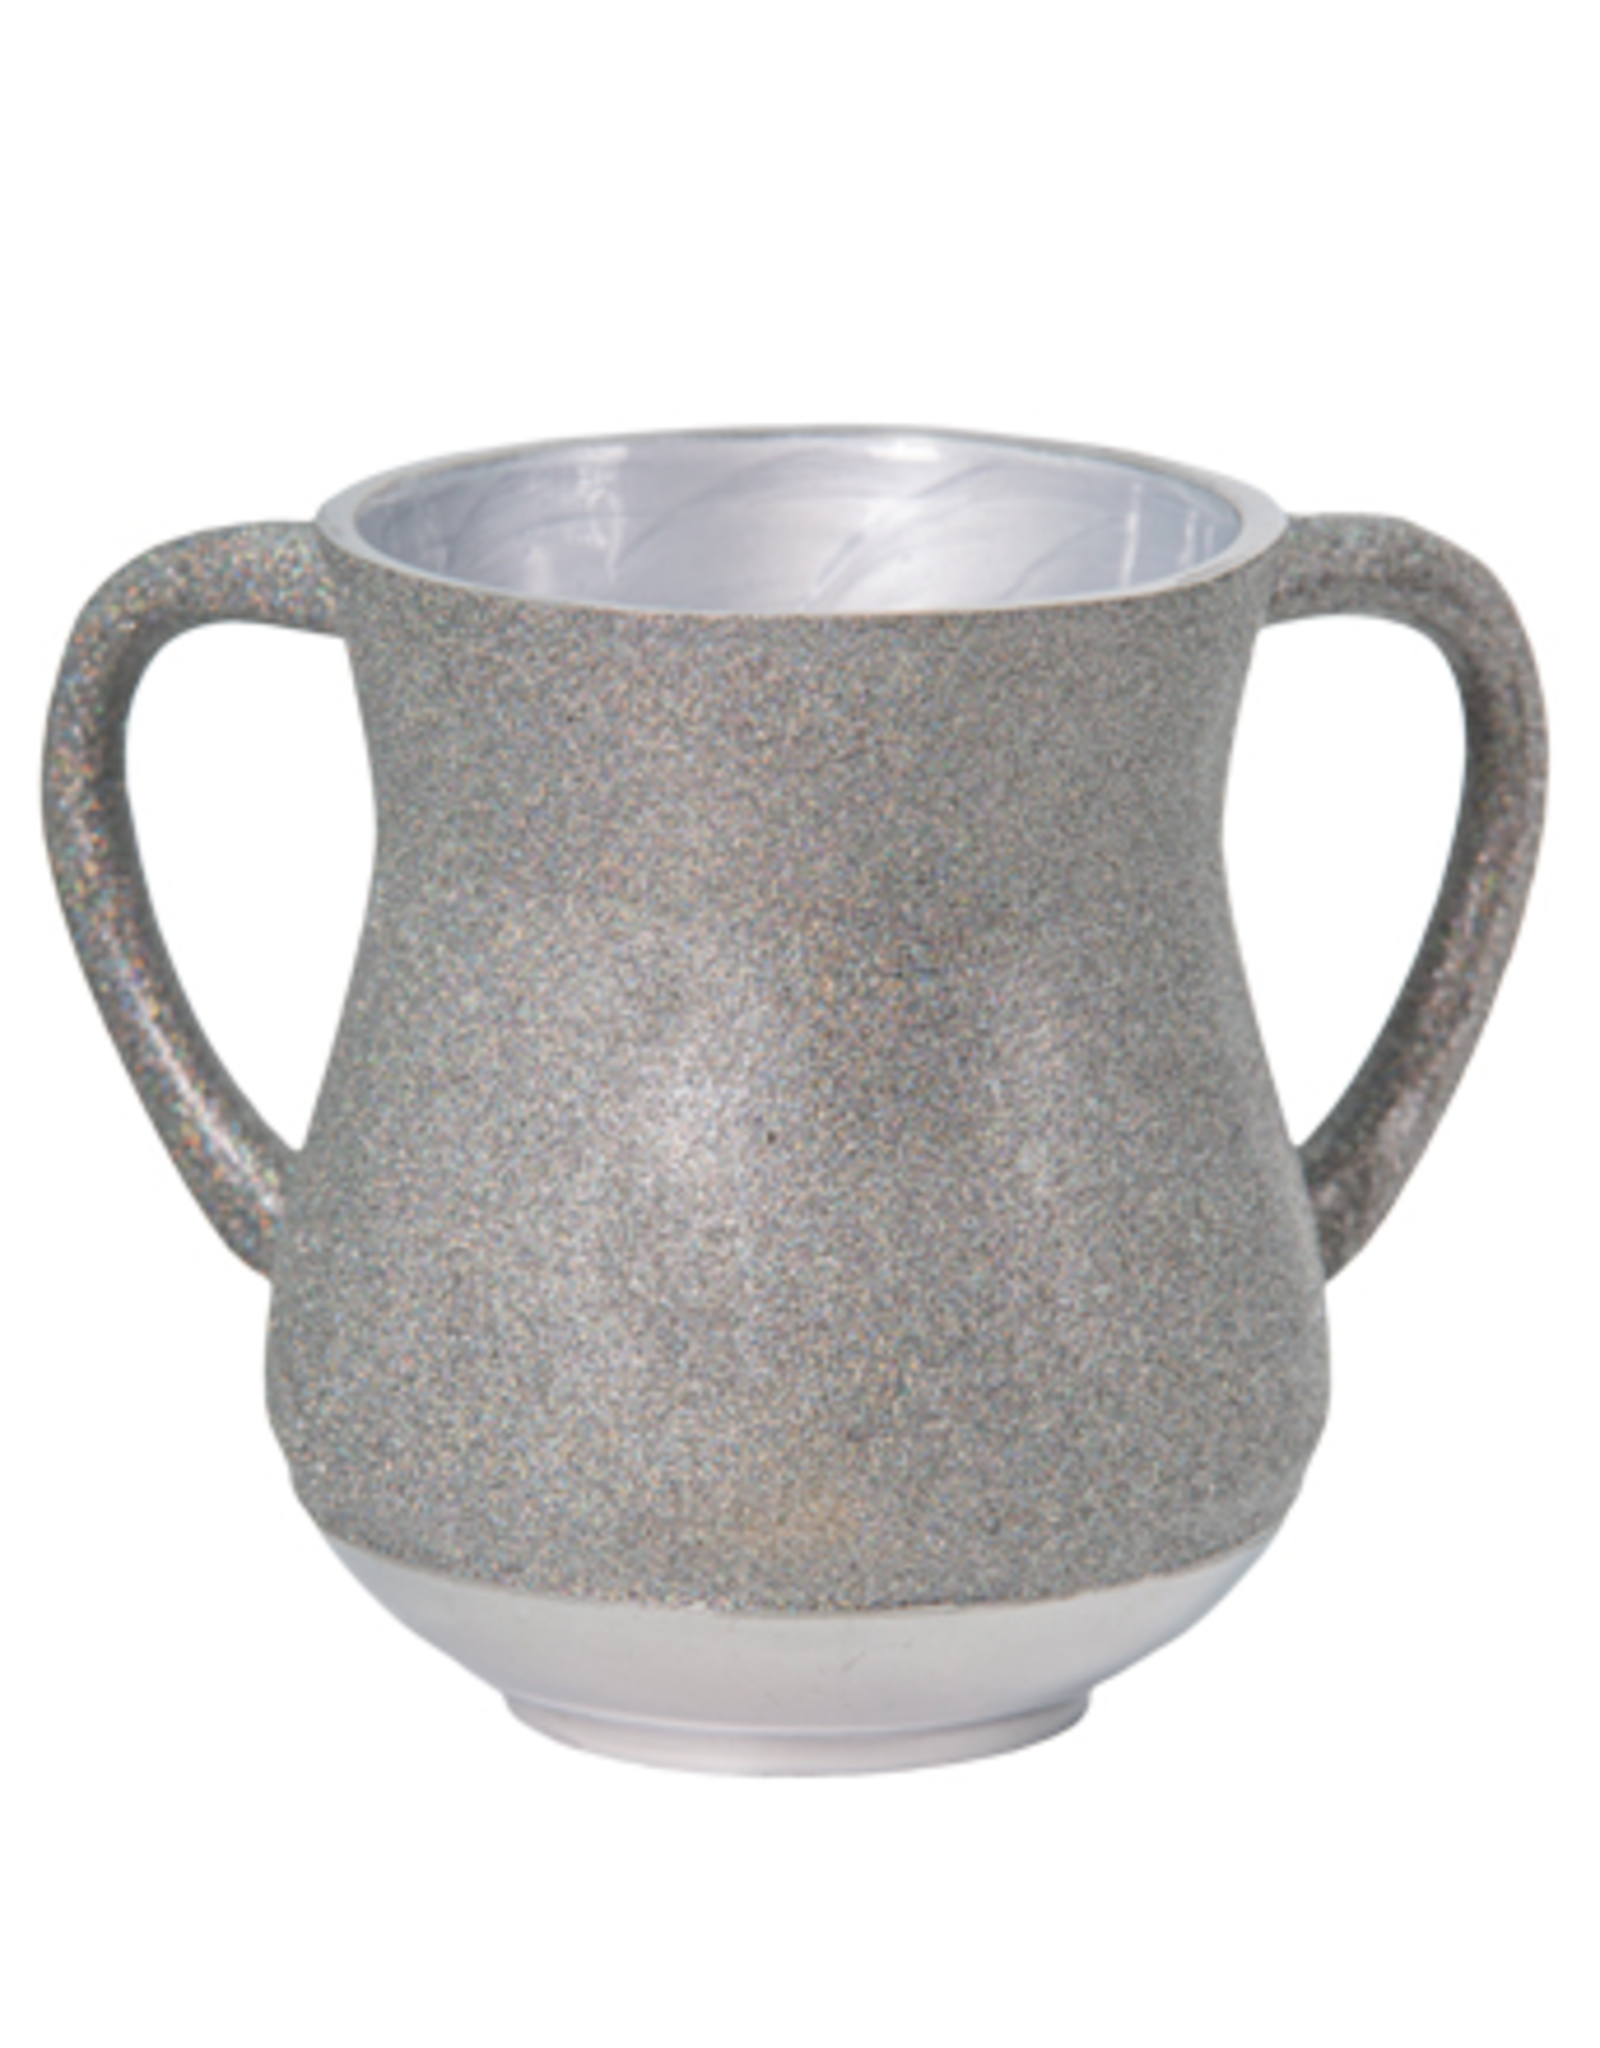 Aluminum Washing Cup 13 cm - In Colorful & Silver Glitter coating